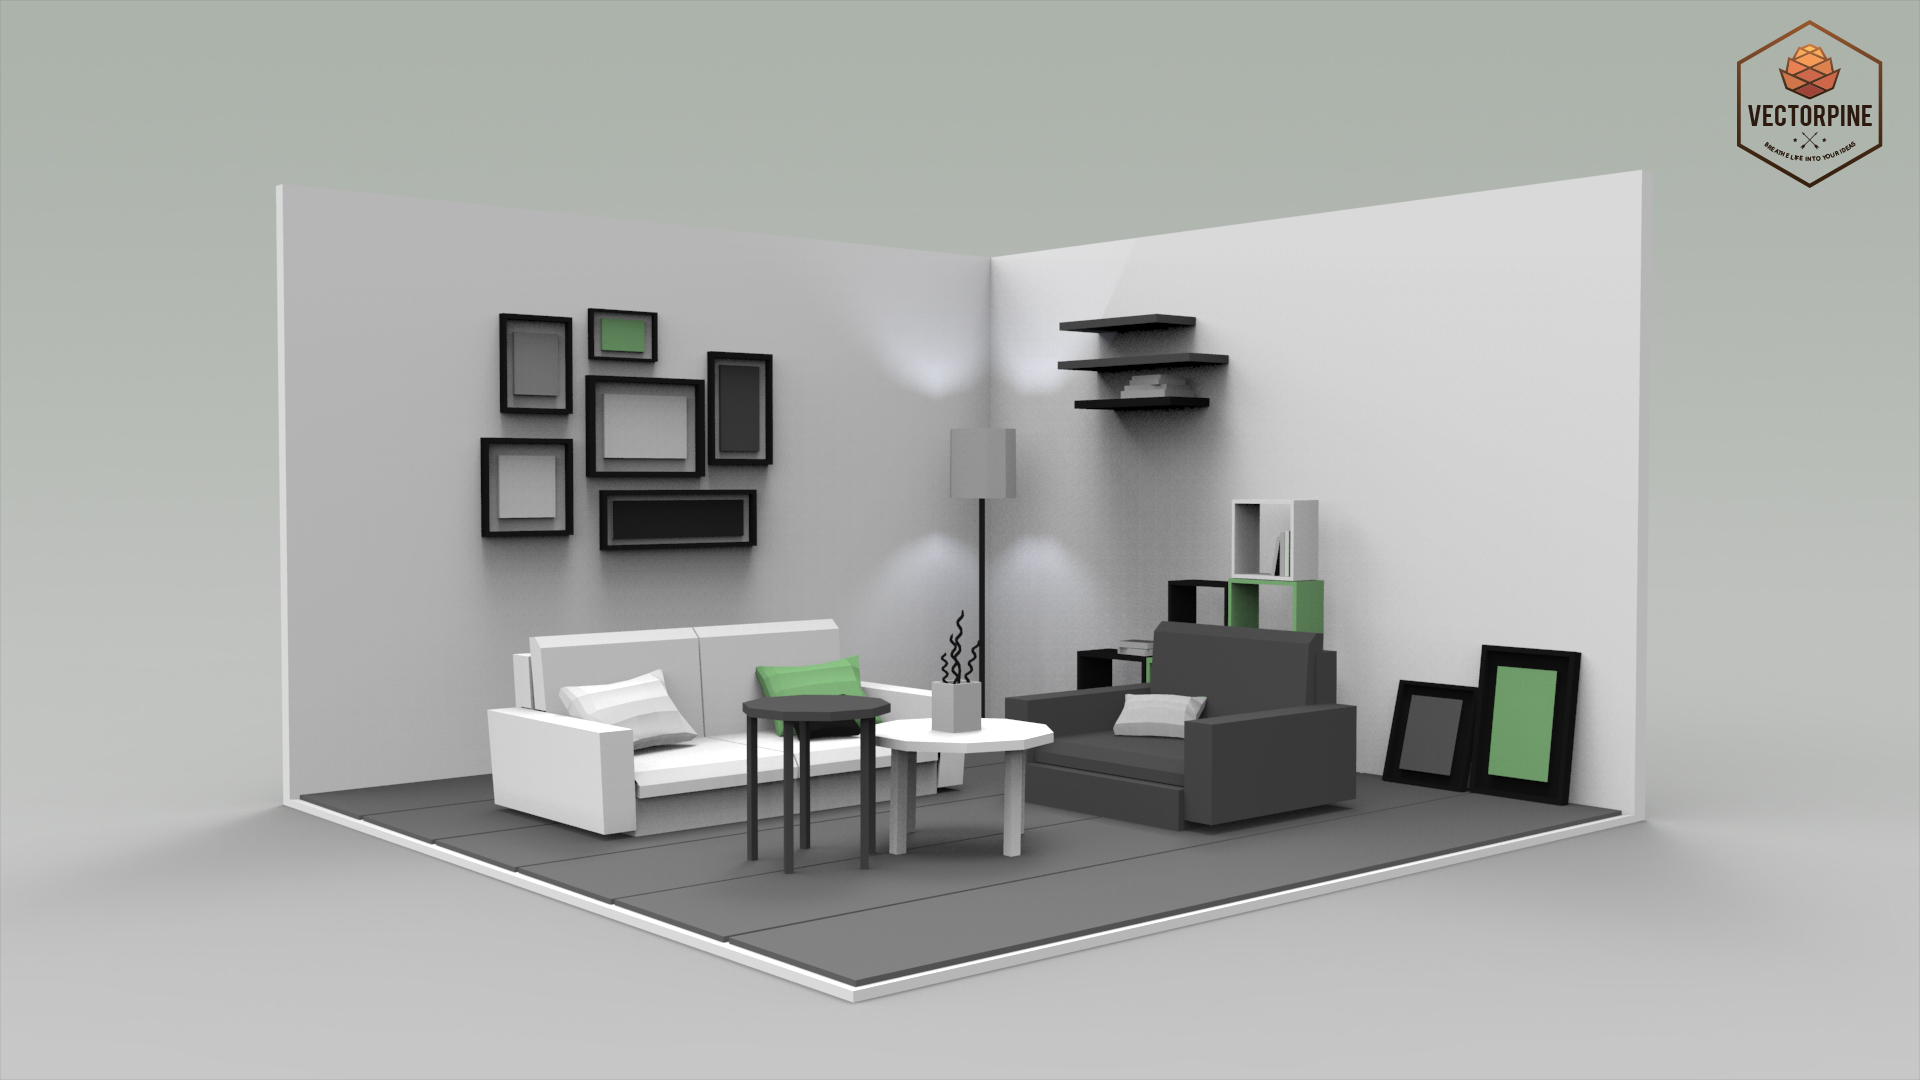 lovely living room 3d model | Low Poly Interiors - Living Room by Vectorpine | 3DOcean